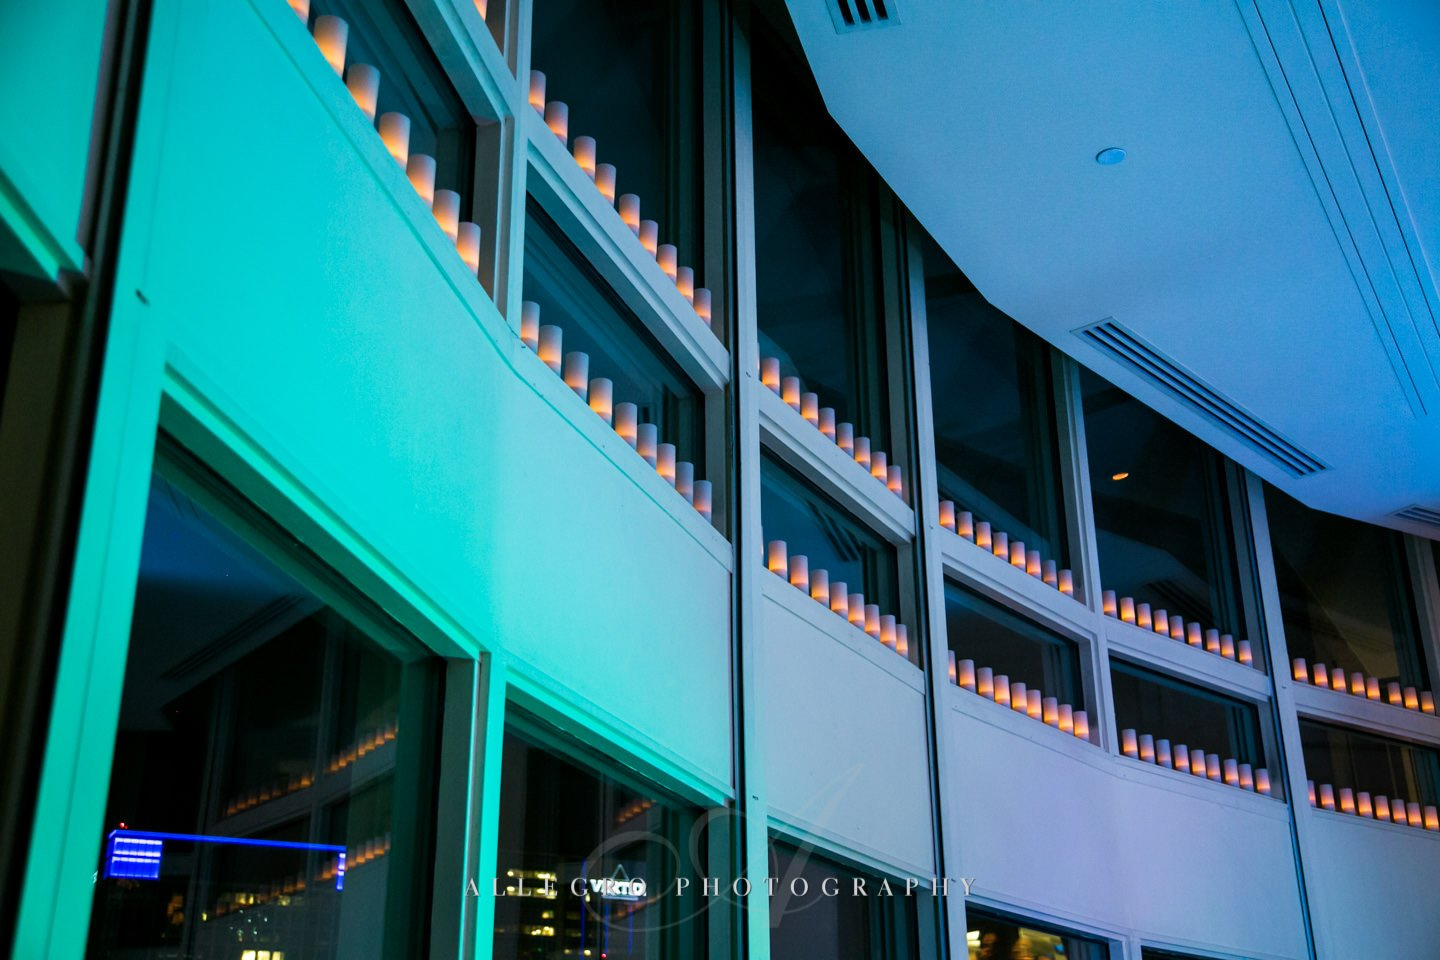 candles along the windows and cool uplights at boston harbor hotel - photo by allegro photography